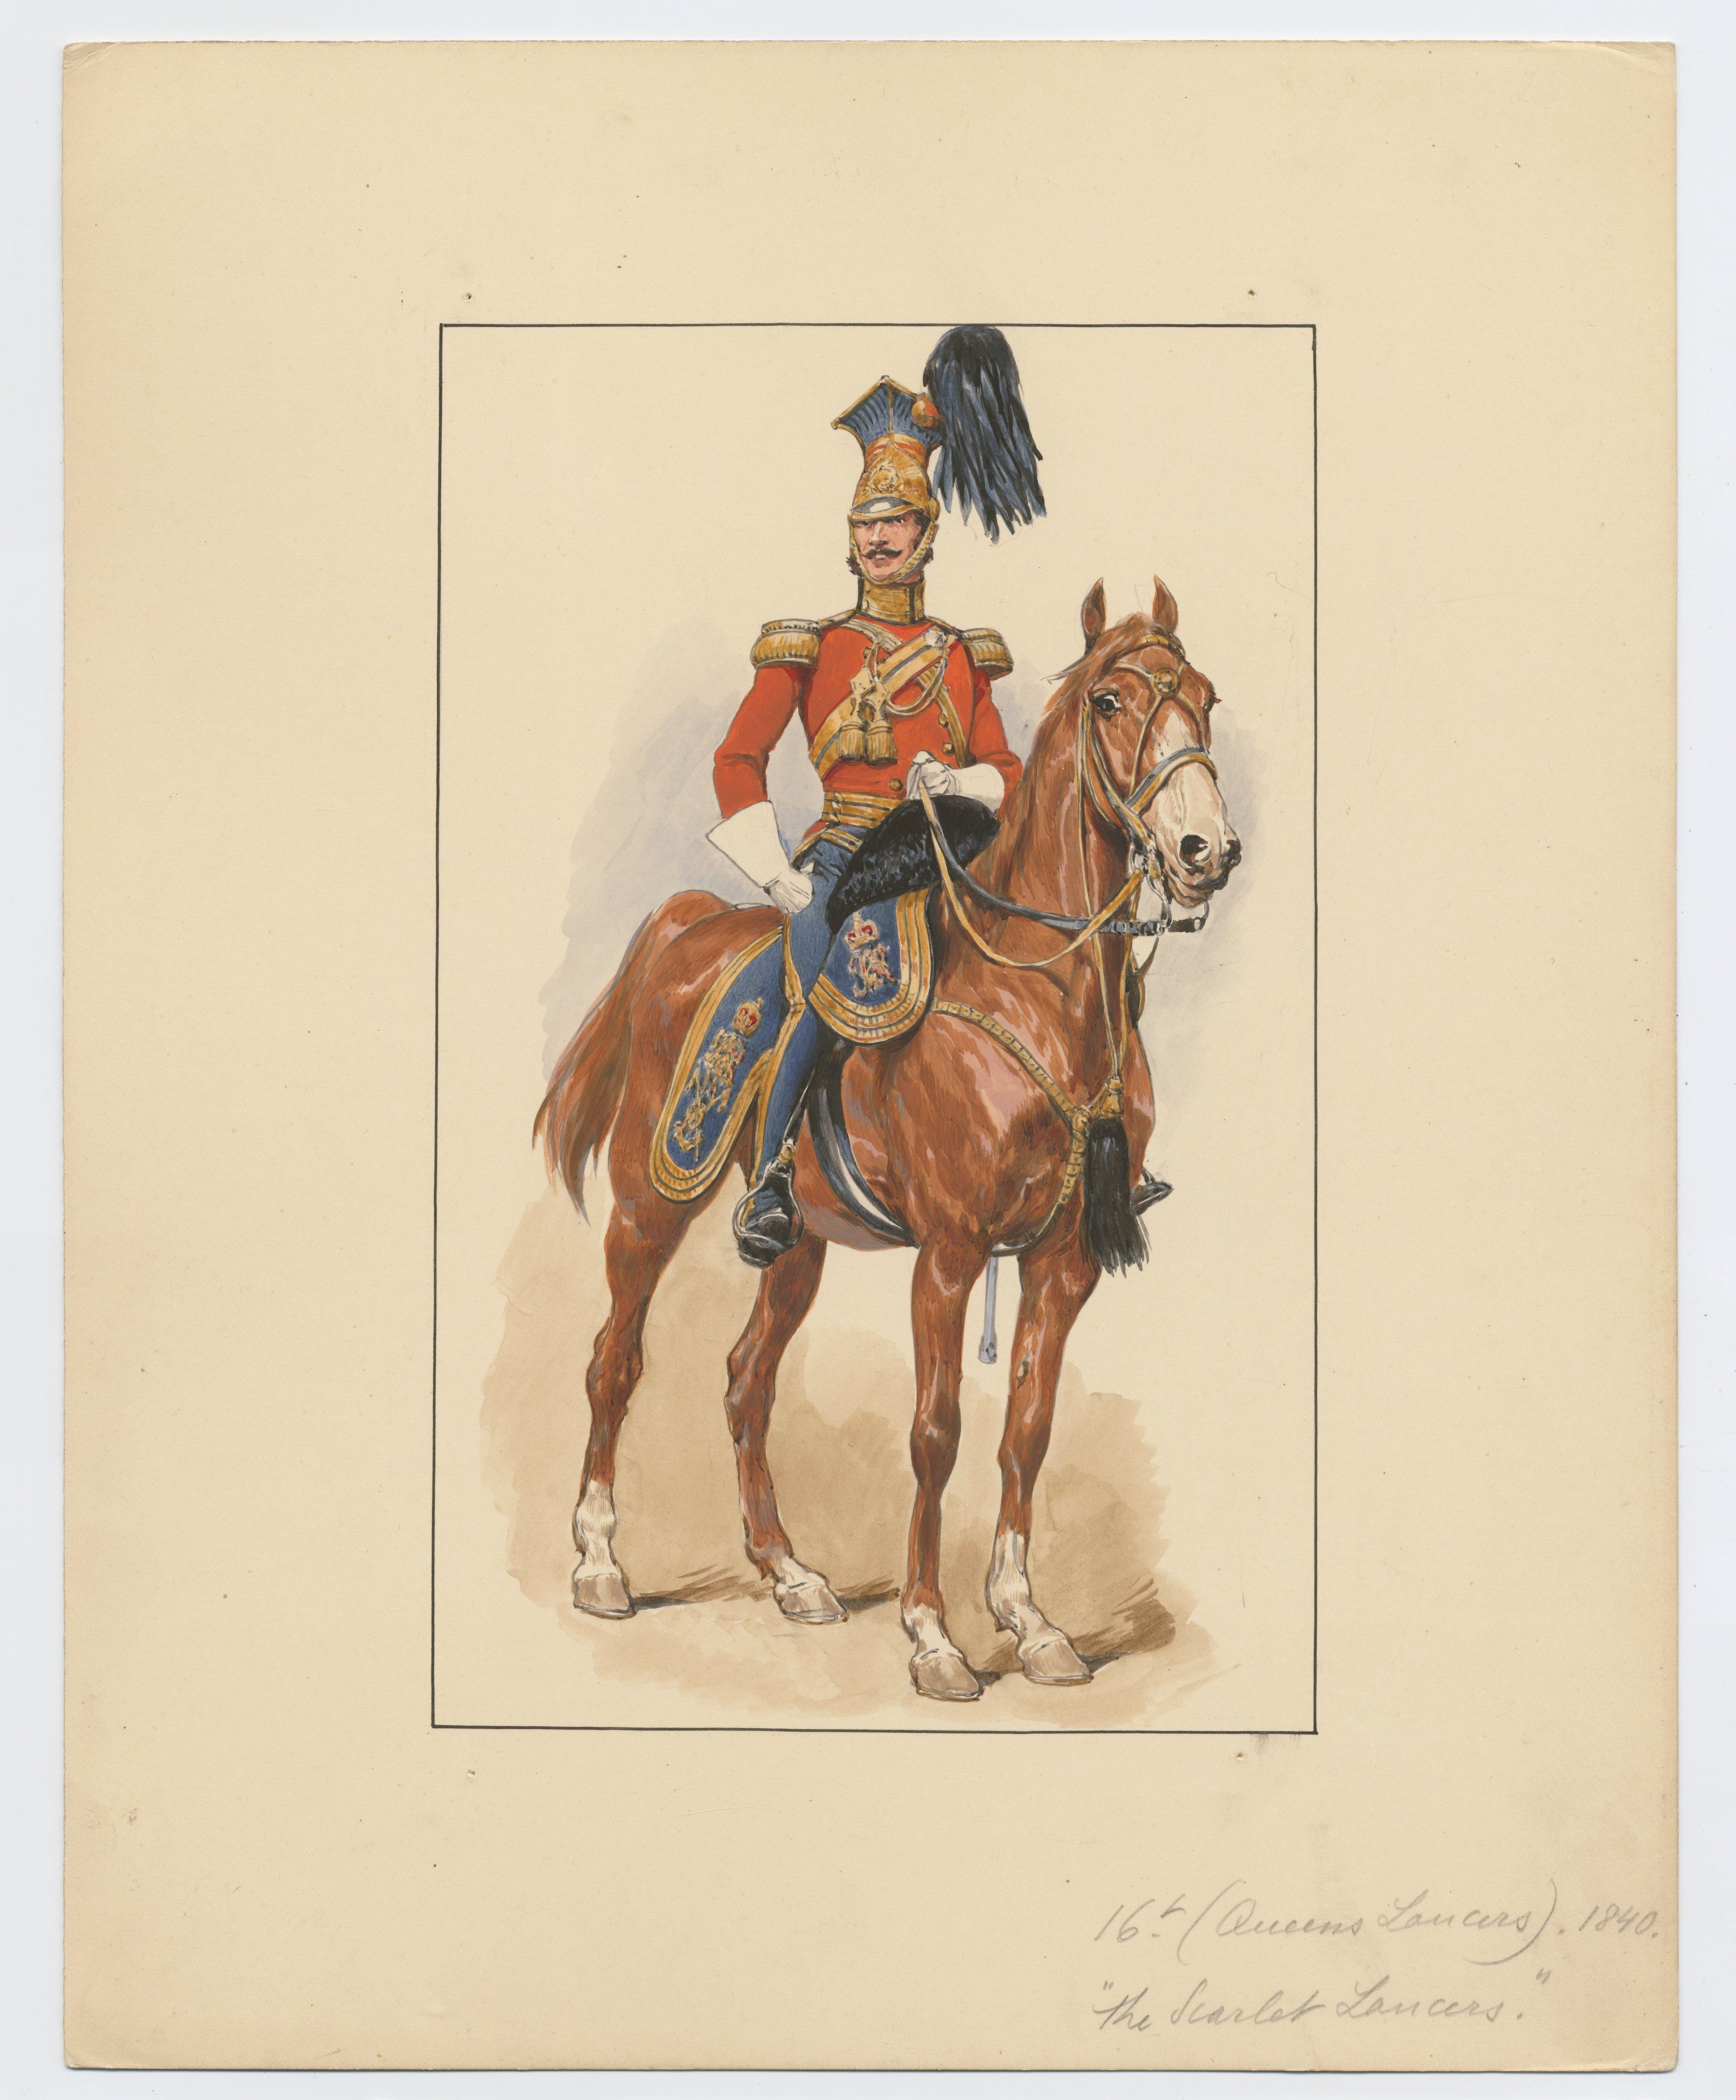 Officer of the 16th Lancers